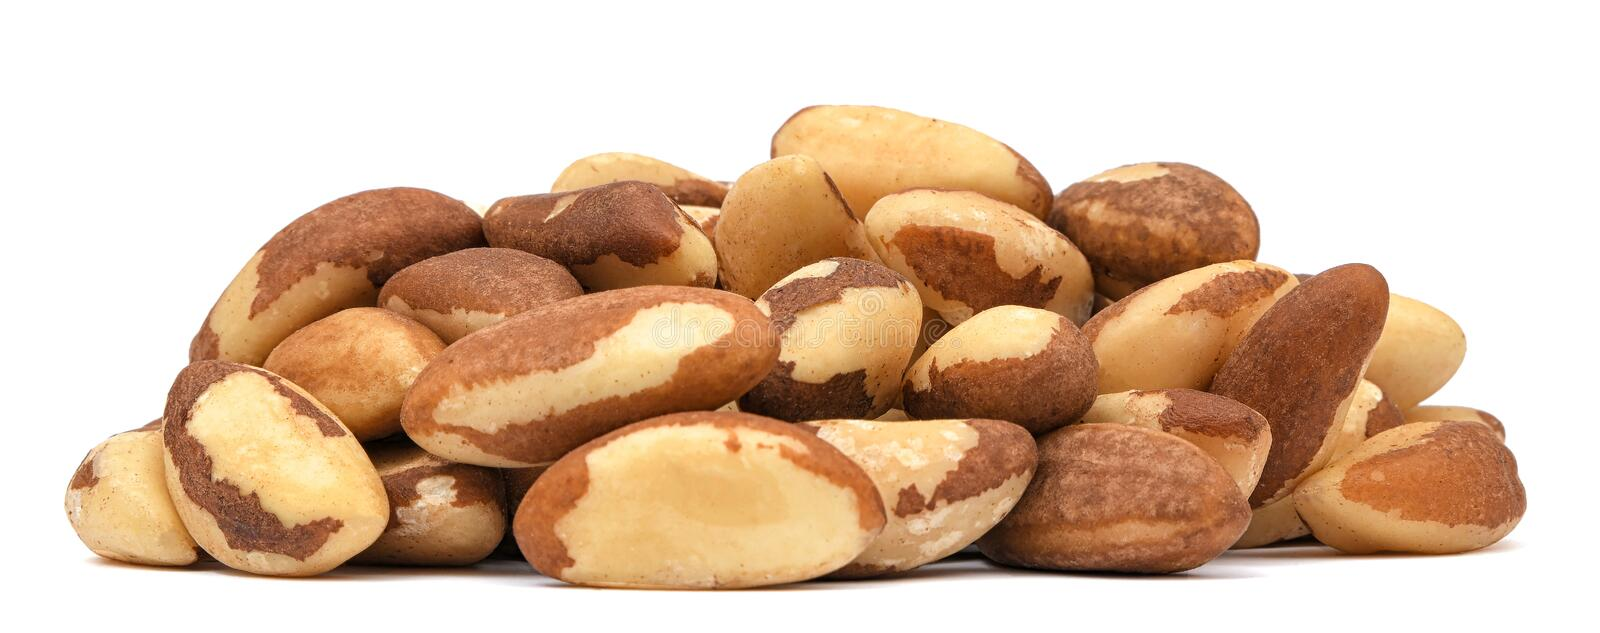 Heap of Brazil nuts isolated on white background. Organic nuts stock images